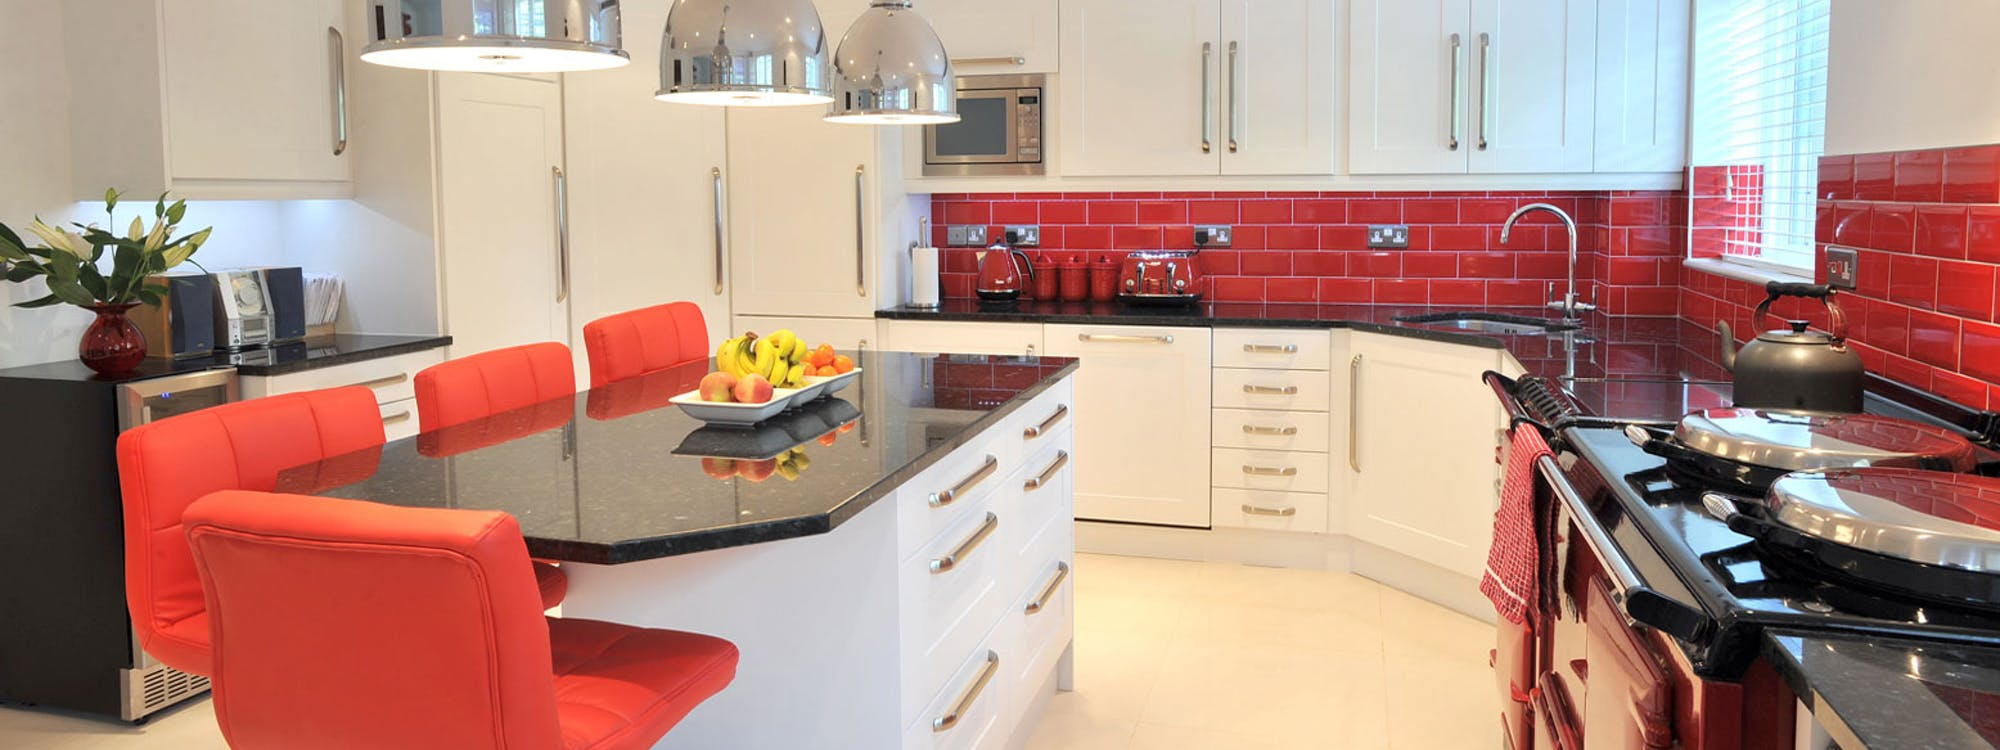 internal improvements - fitted kitchens designed, supplied, project managed & installed